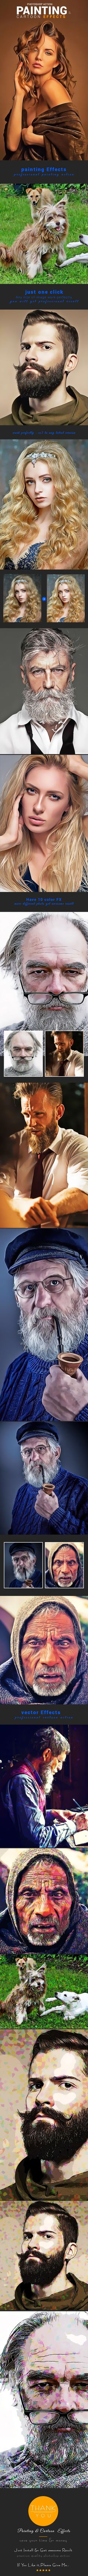 Painting & Cartoon Effects — Photoshop ATN #pop art #comic book • Available here ➝ https://graphicriver.net/item/painting-cartoon-effects/20865260?ref=pxcr